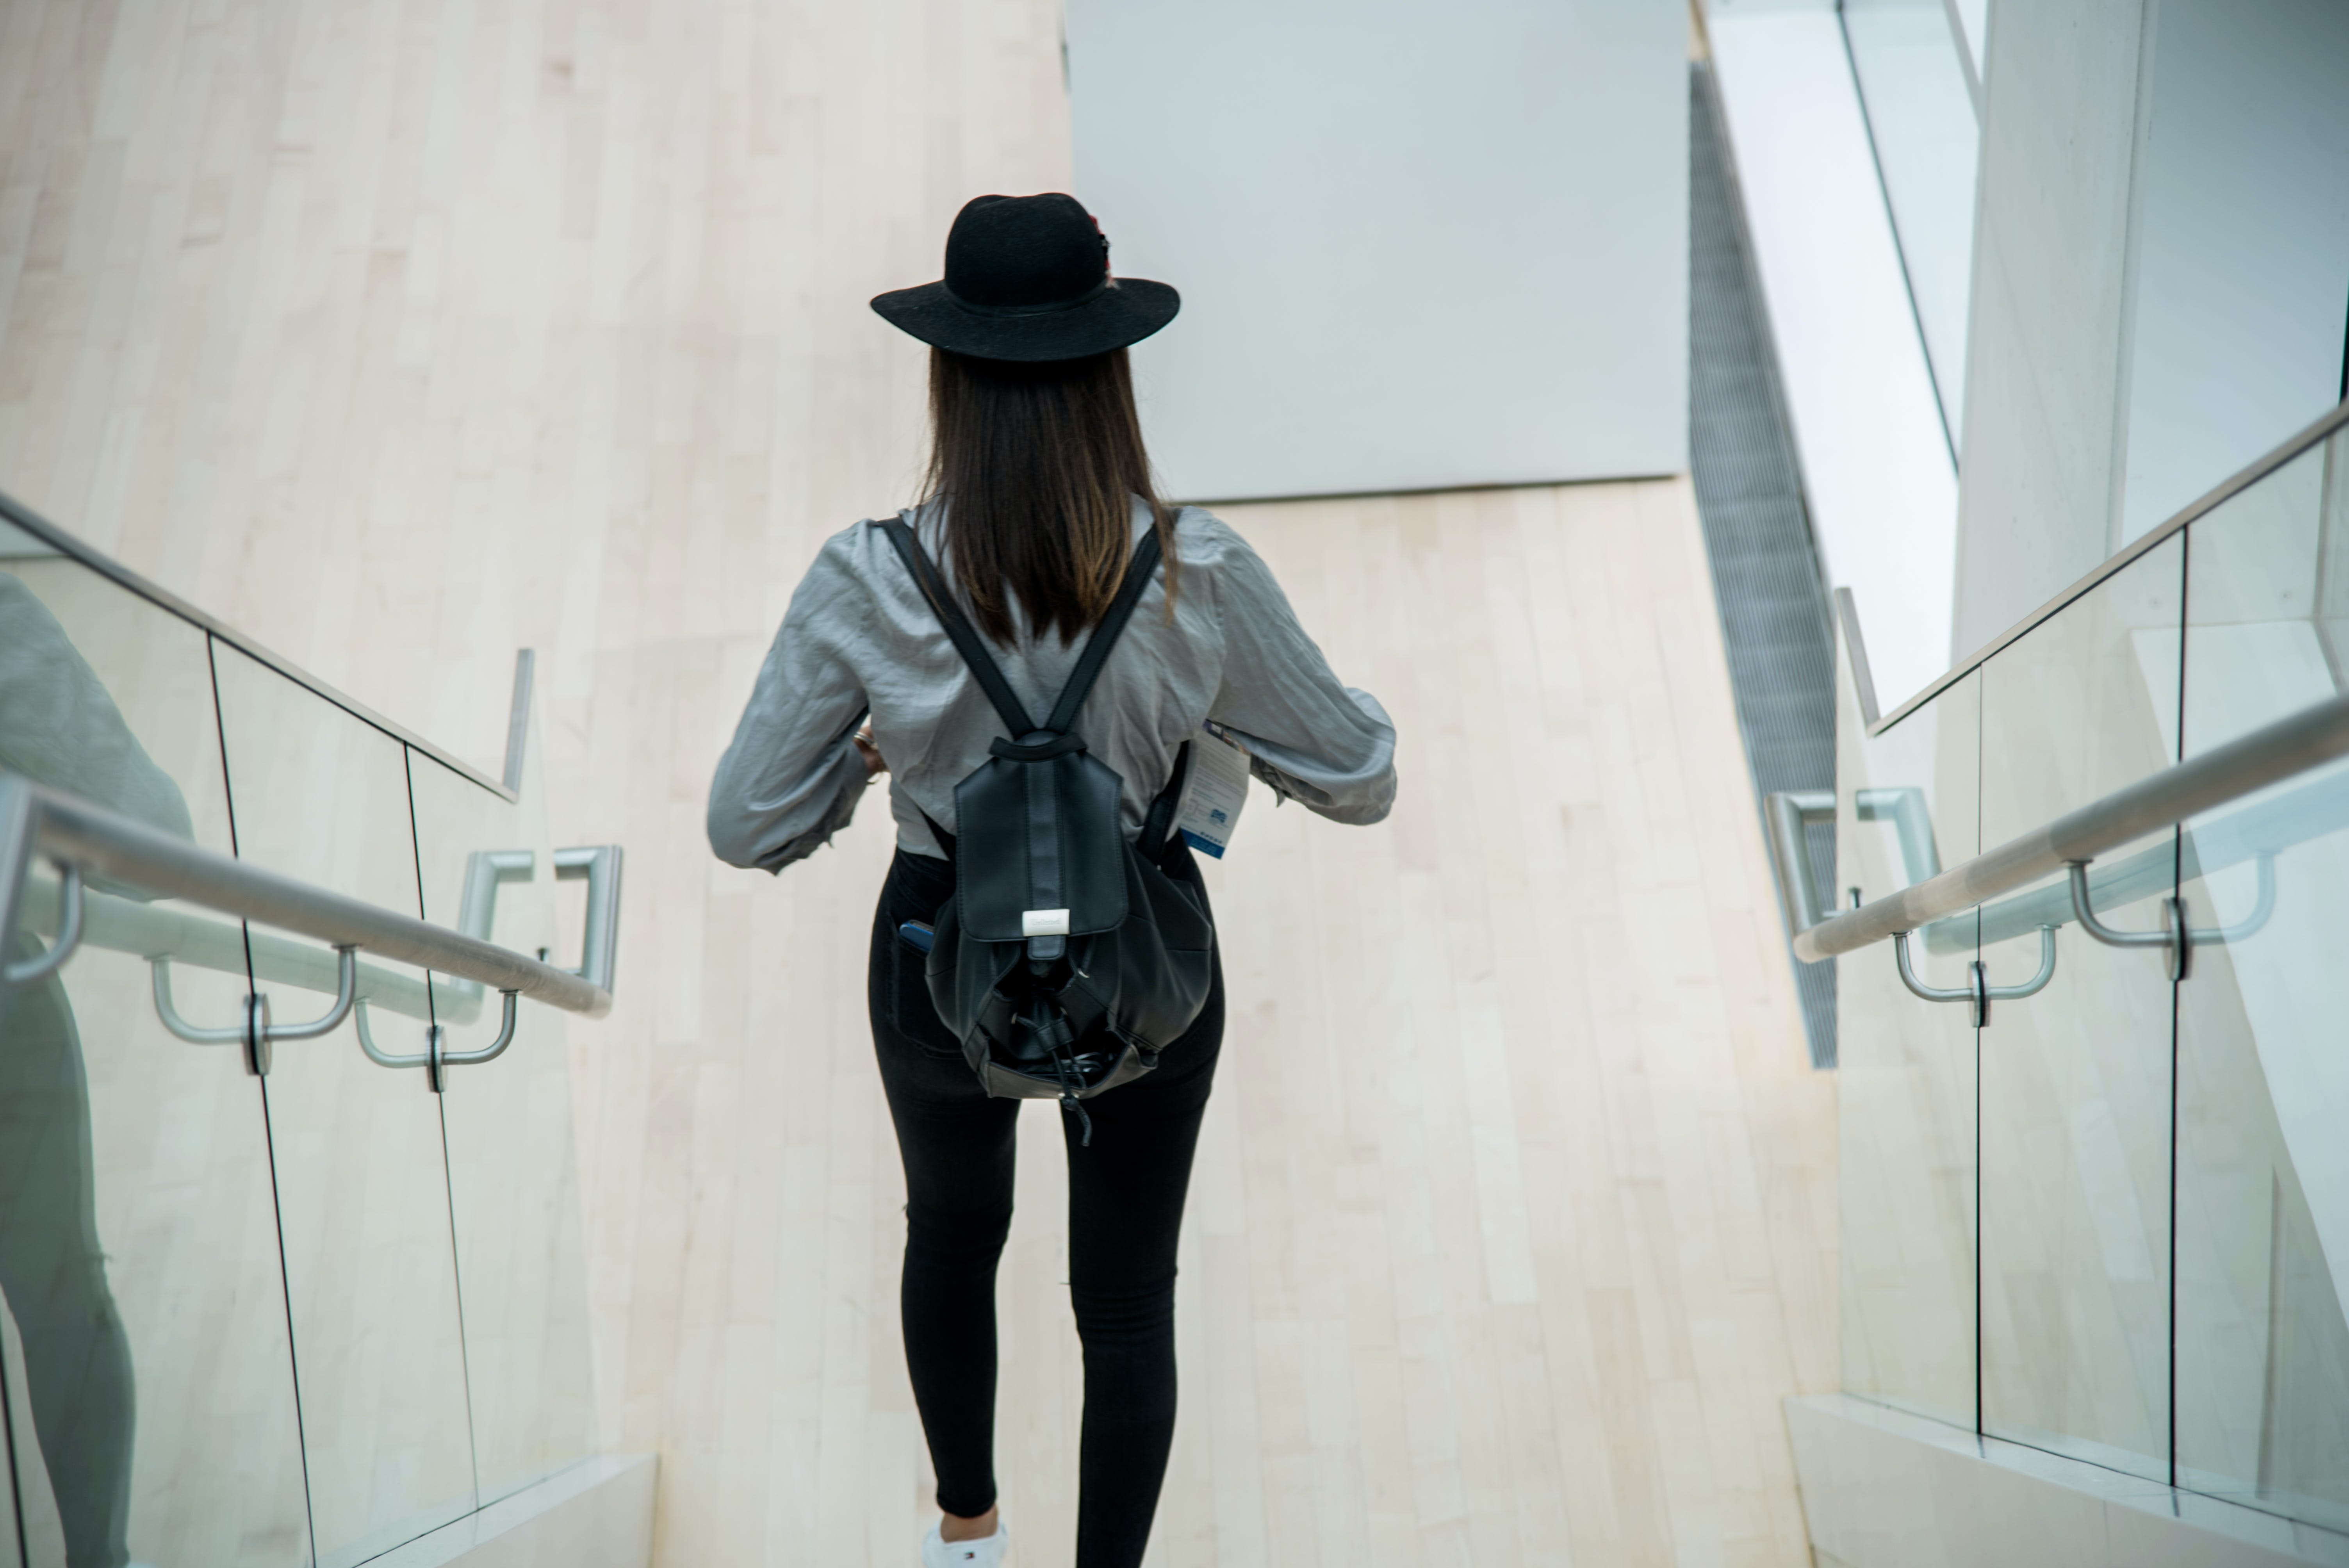 Free stock photo of art museums, black hat, climbing stairs, girl in black hat